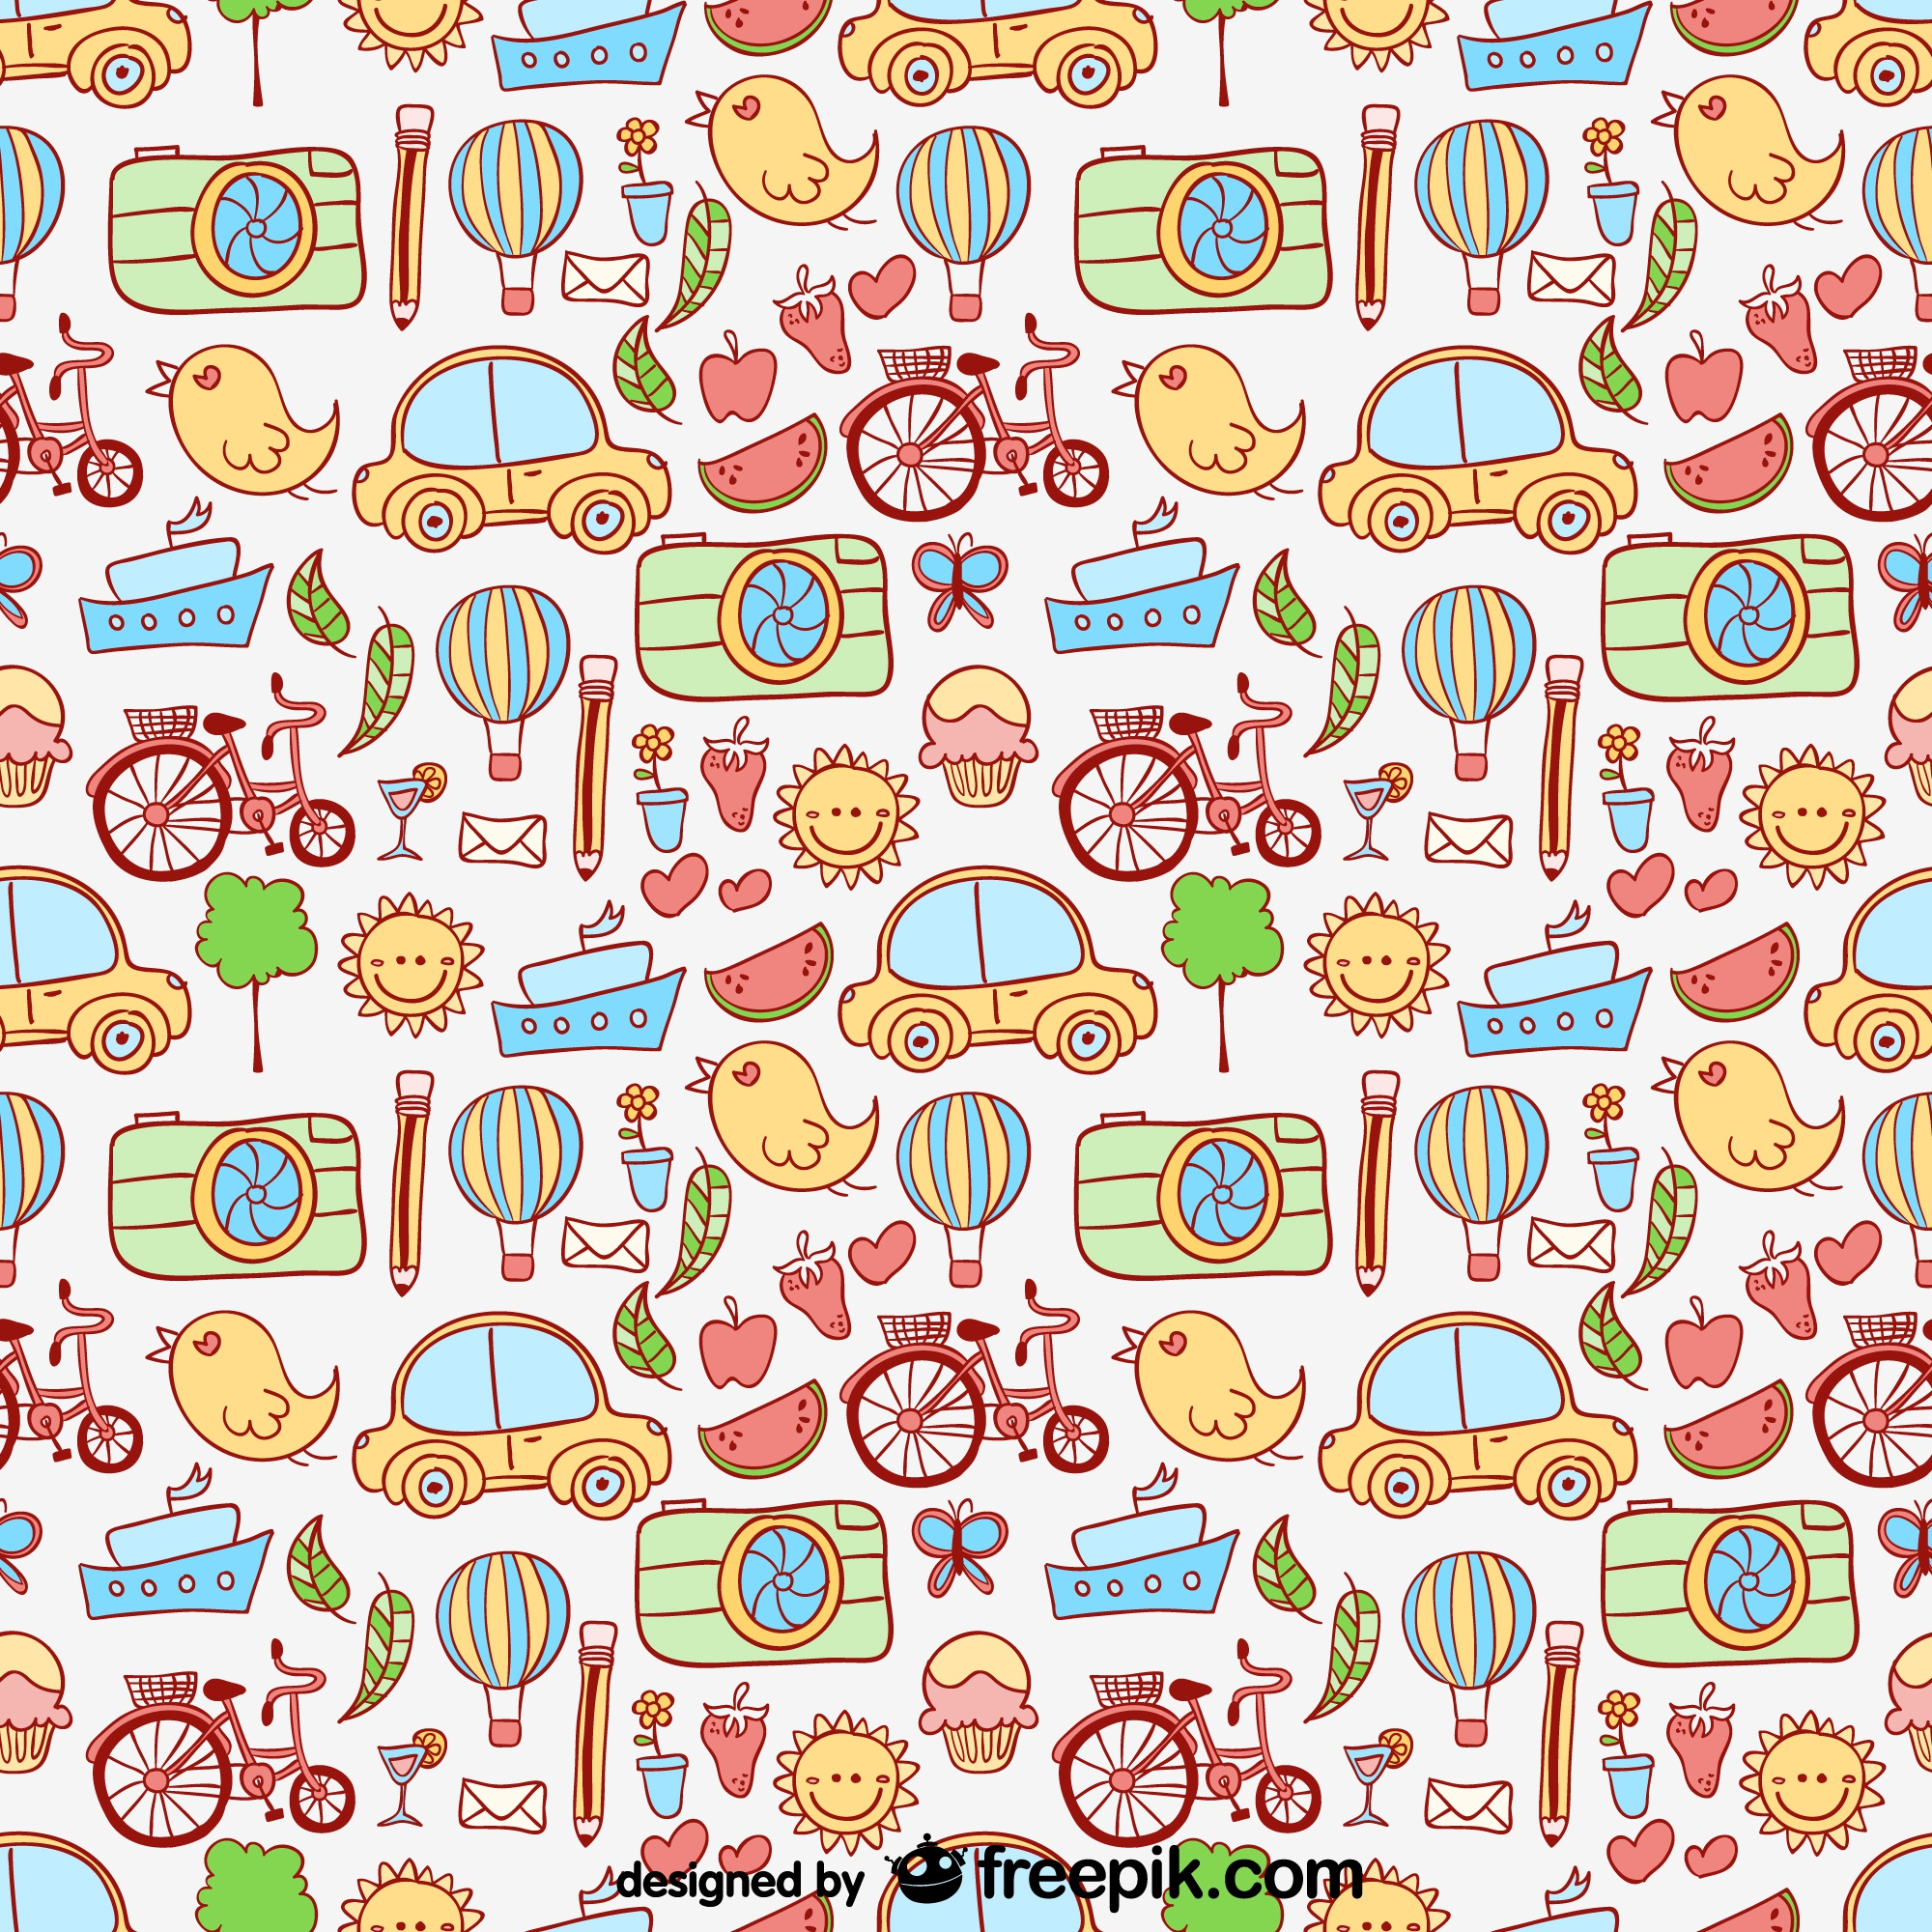 Cartoon graphics vector pattern